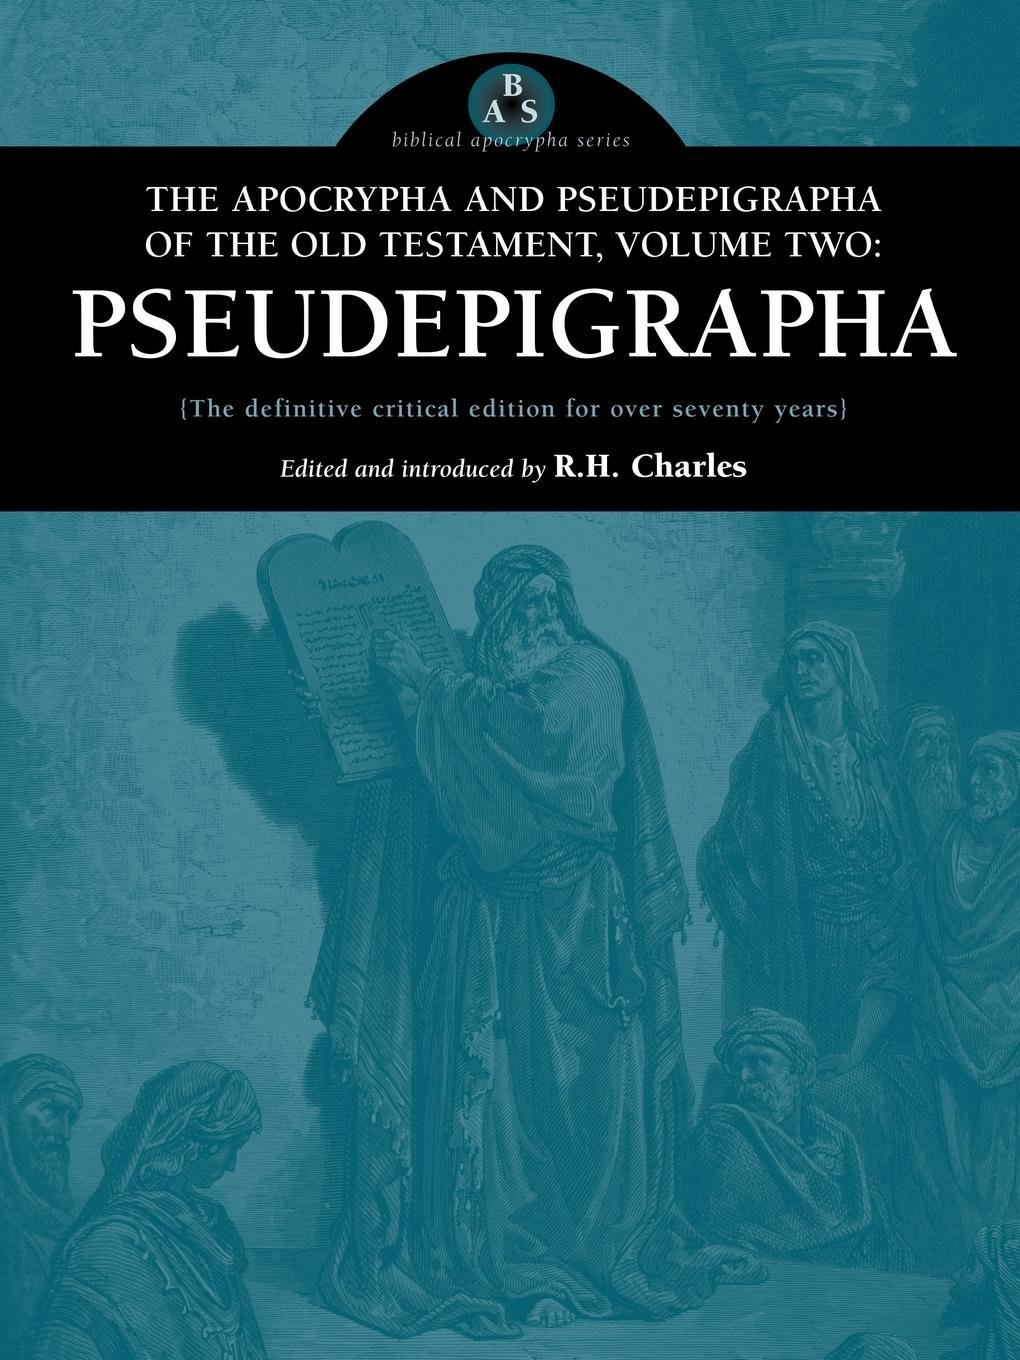 Download The Apocrypha and Pseudepigrapha of the Old Testament, Volume Two PDF